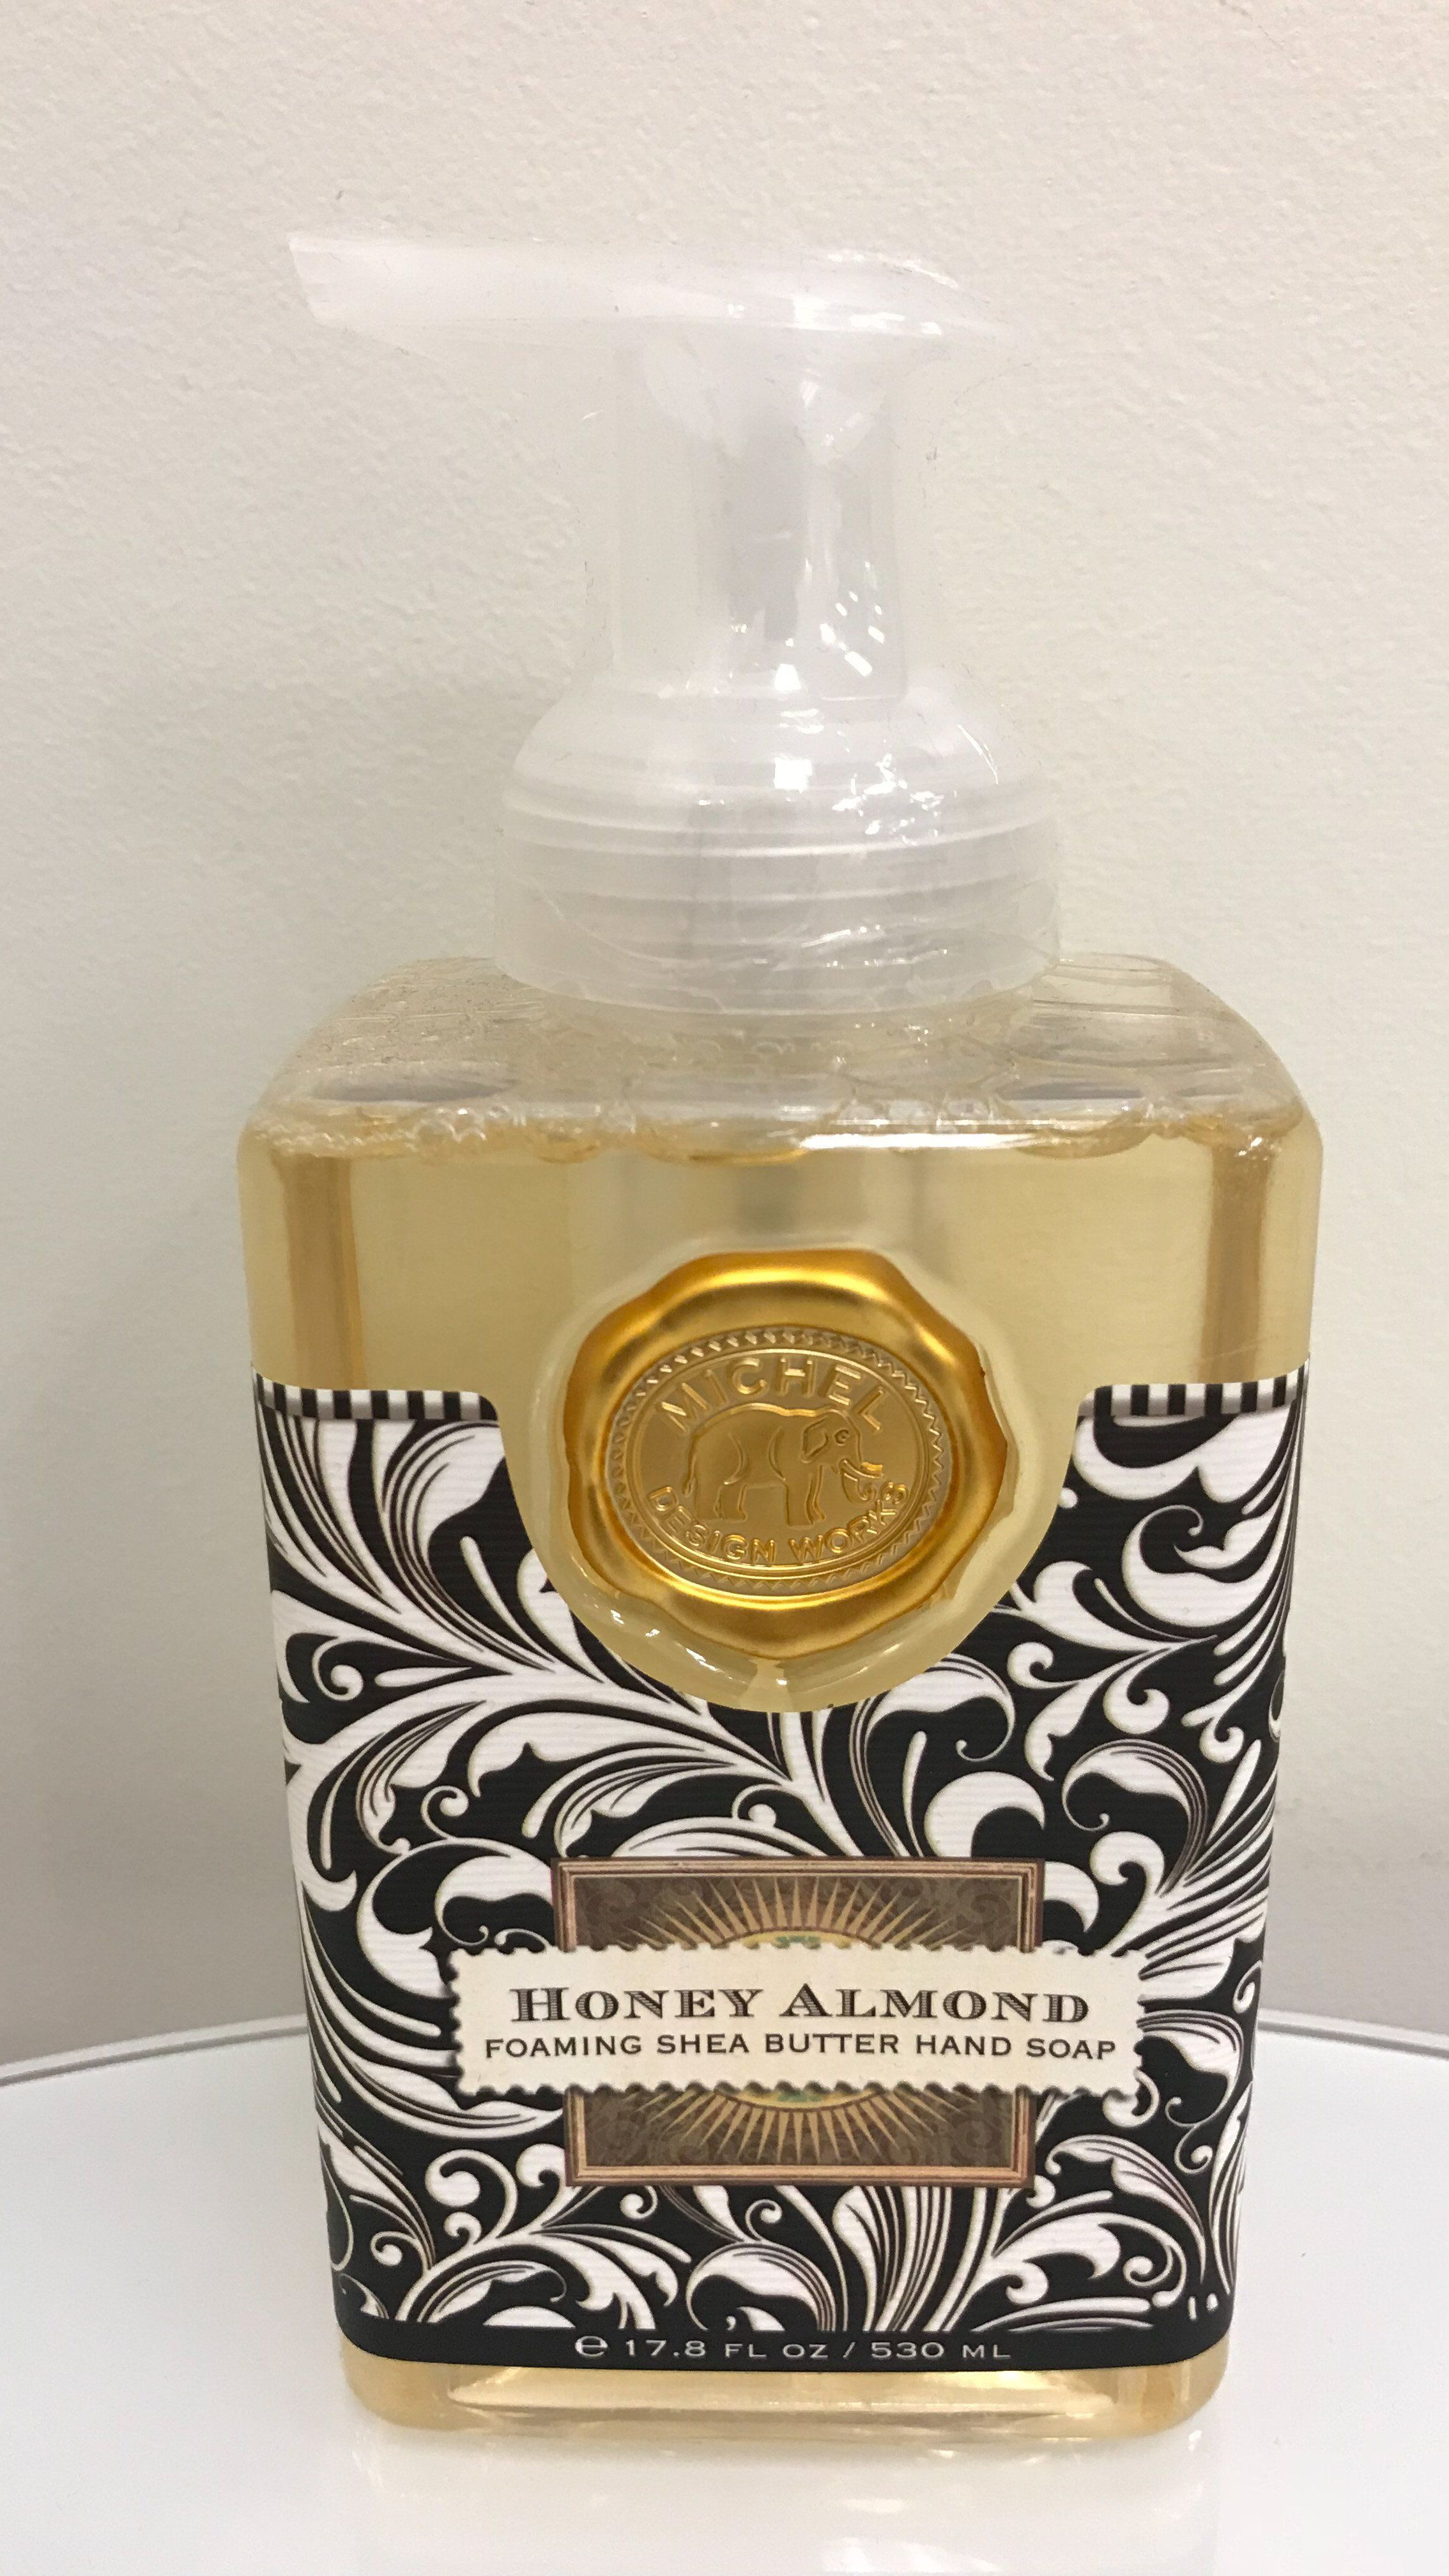 Michel Design Works Honey Almond Foaming Hand Soap Products